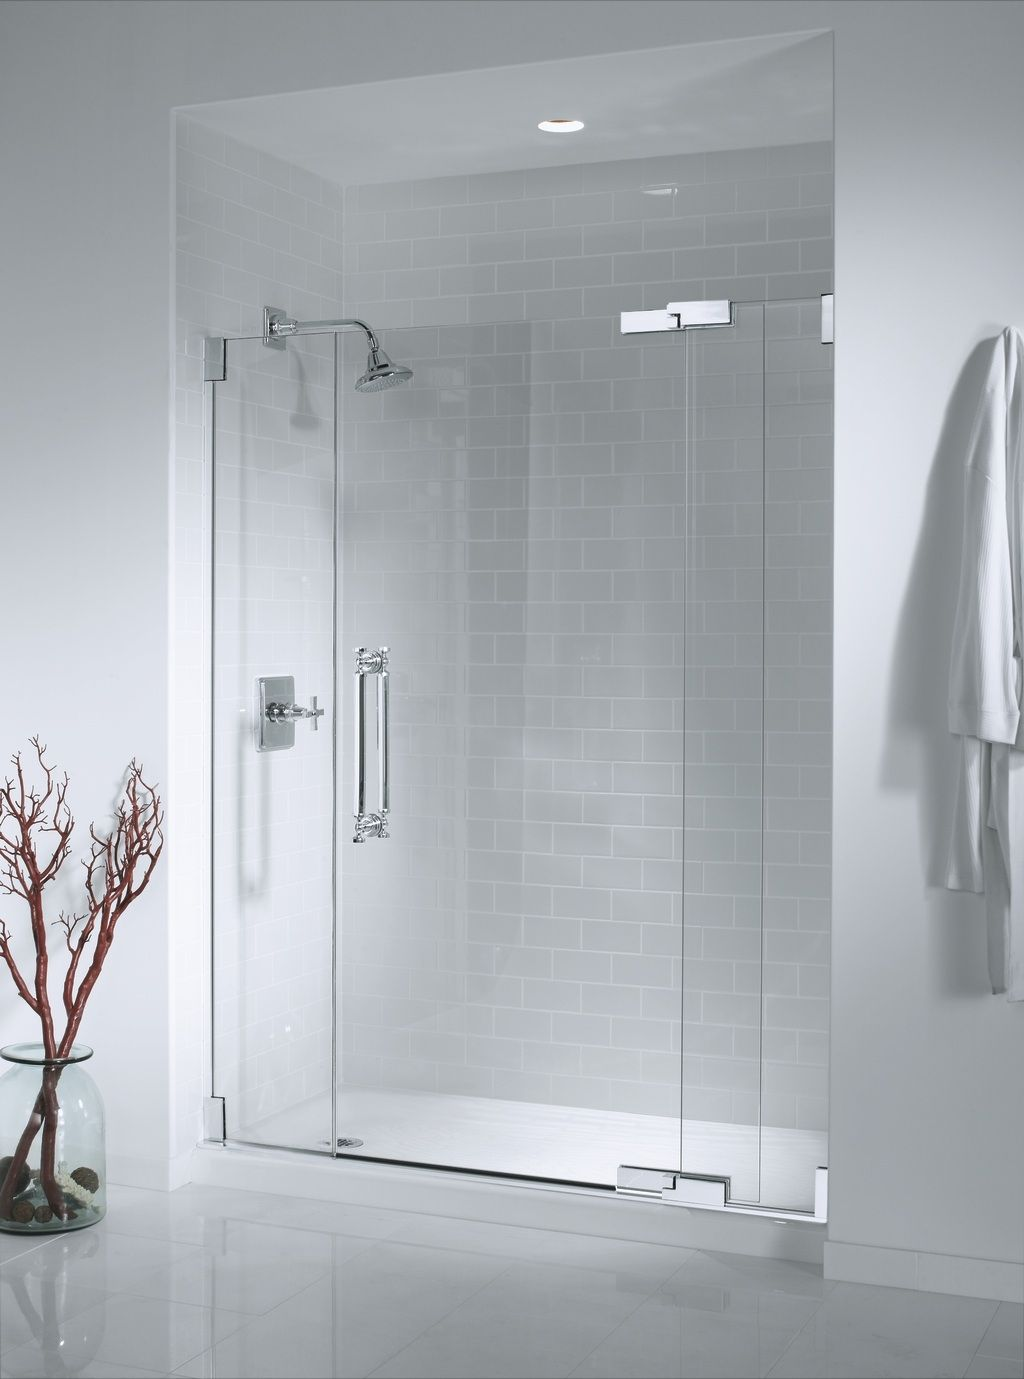 Salient frameless shower door handle for photos frameless shower door - Glass Showers Our Shower Doors Do More Than Simply Open And Close We Design Frameless